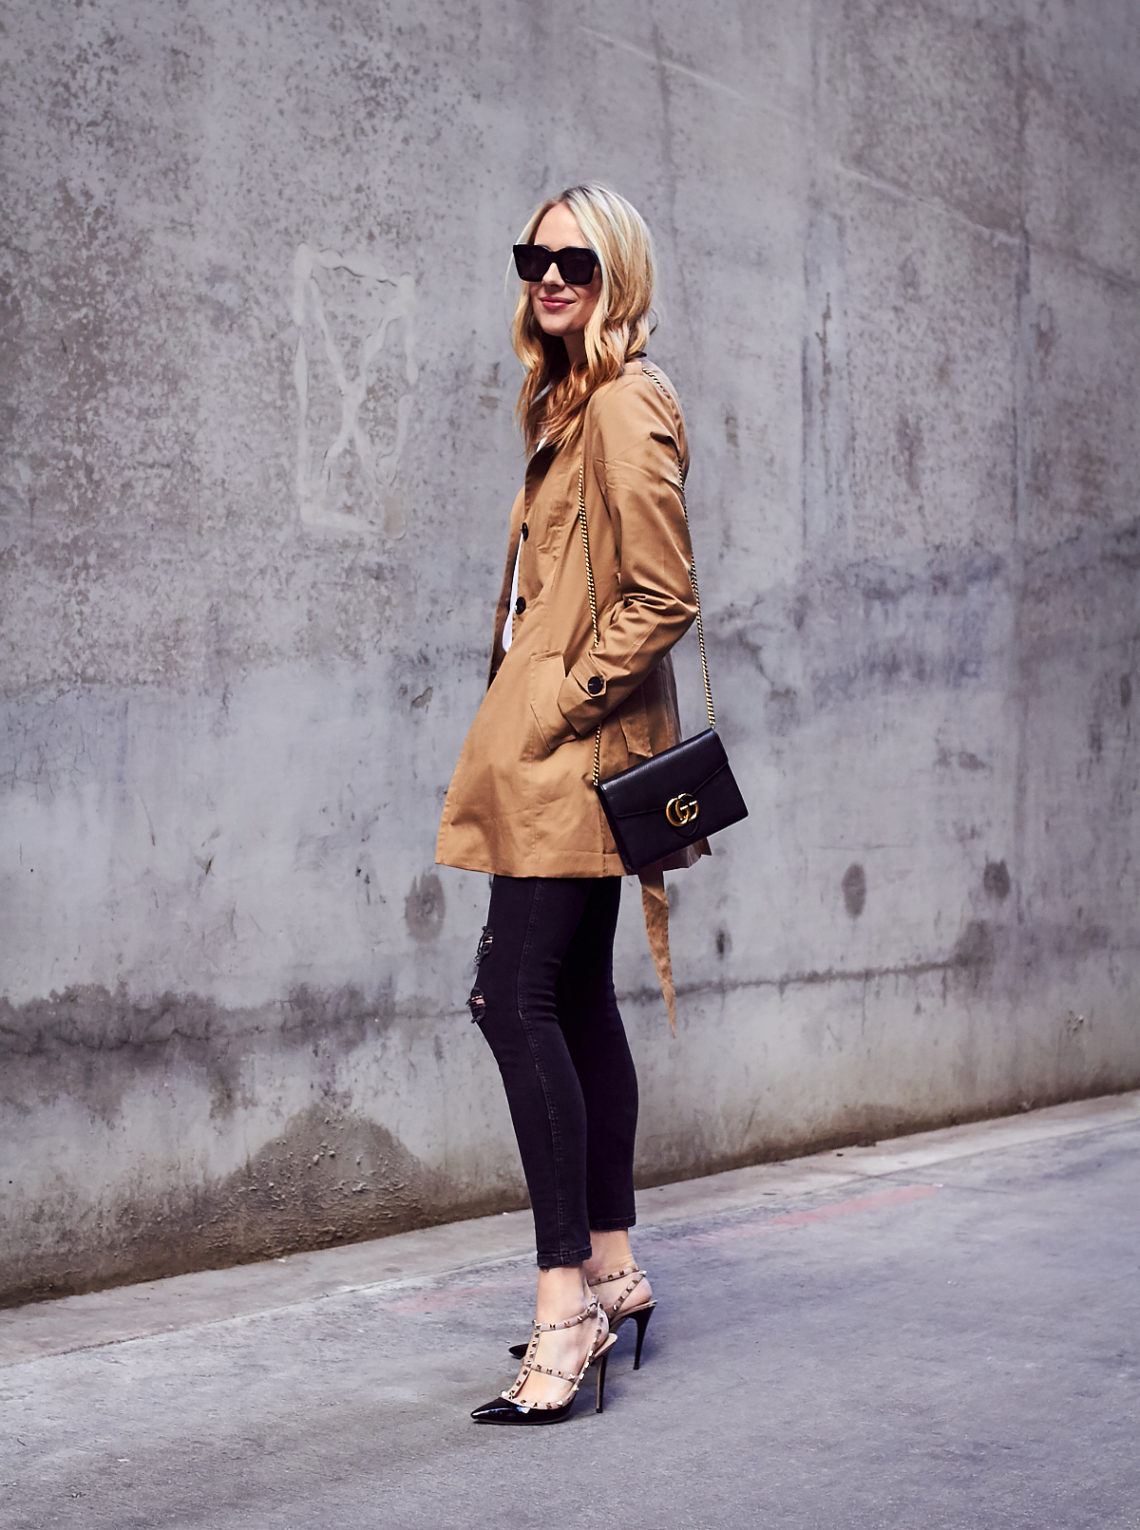 Fall Outfit, Spring Outfit, Trench Coat, Black Ripped Skinny Jeans, Valentino Rockstud Pumps, Gucci Marmont Handbag